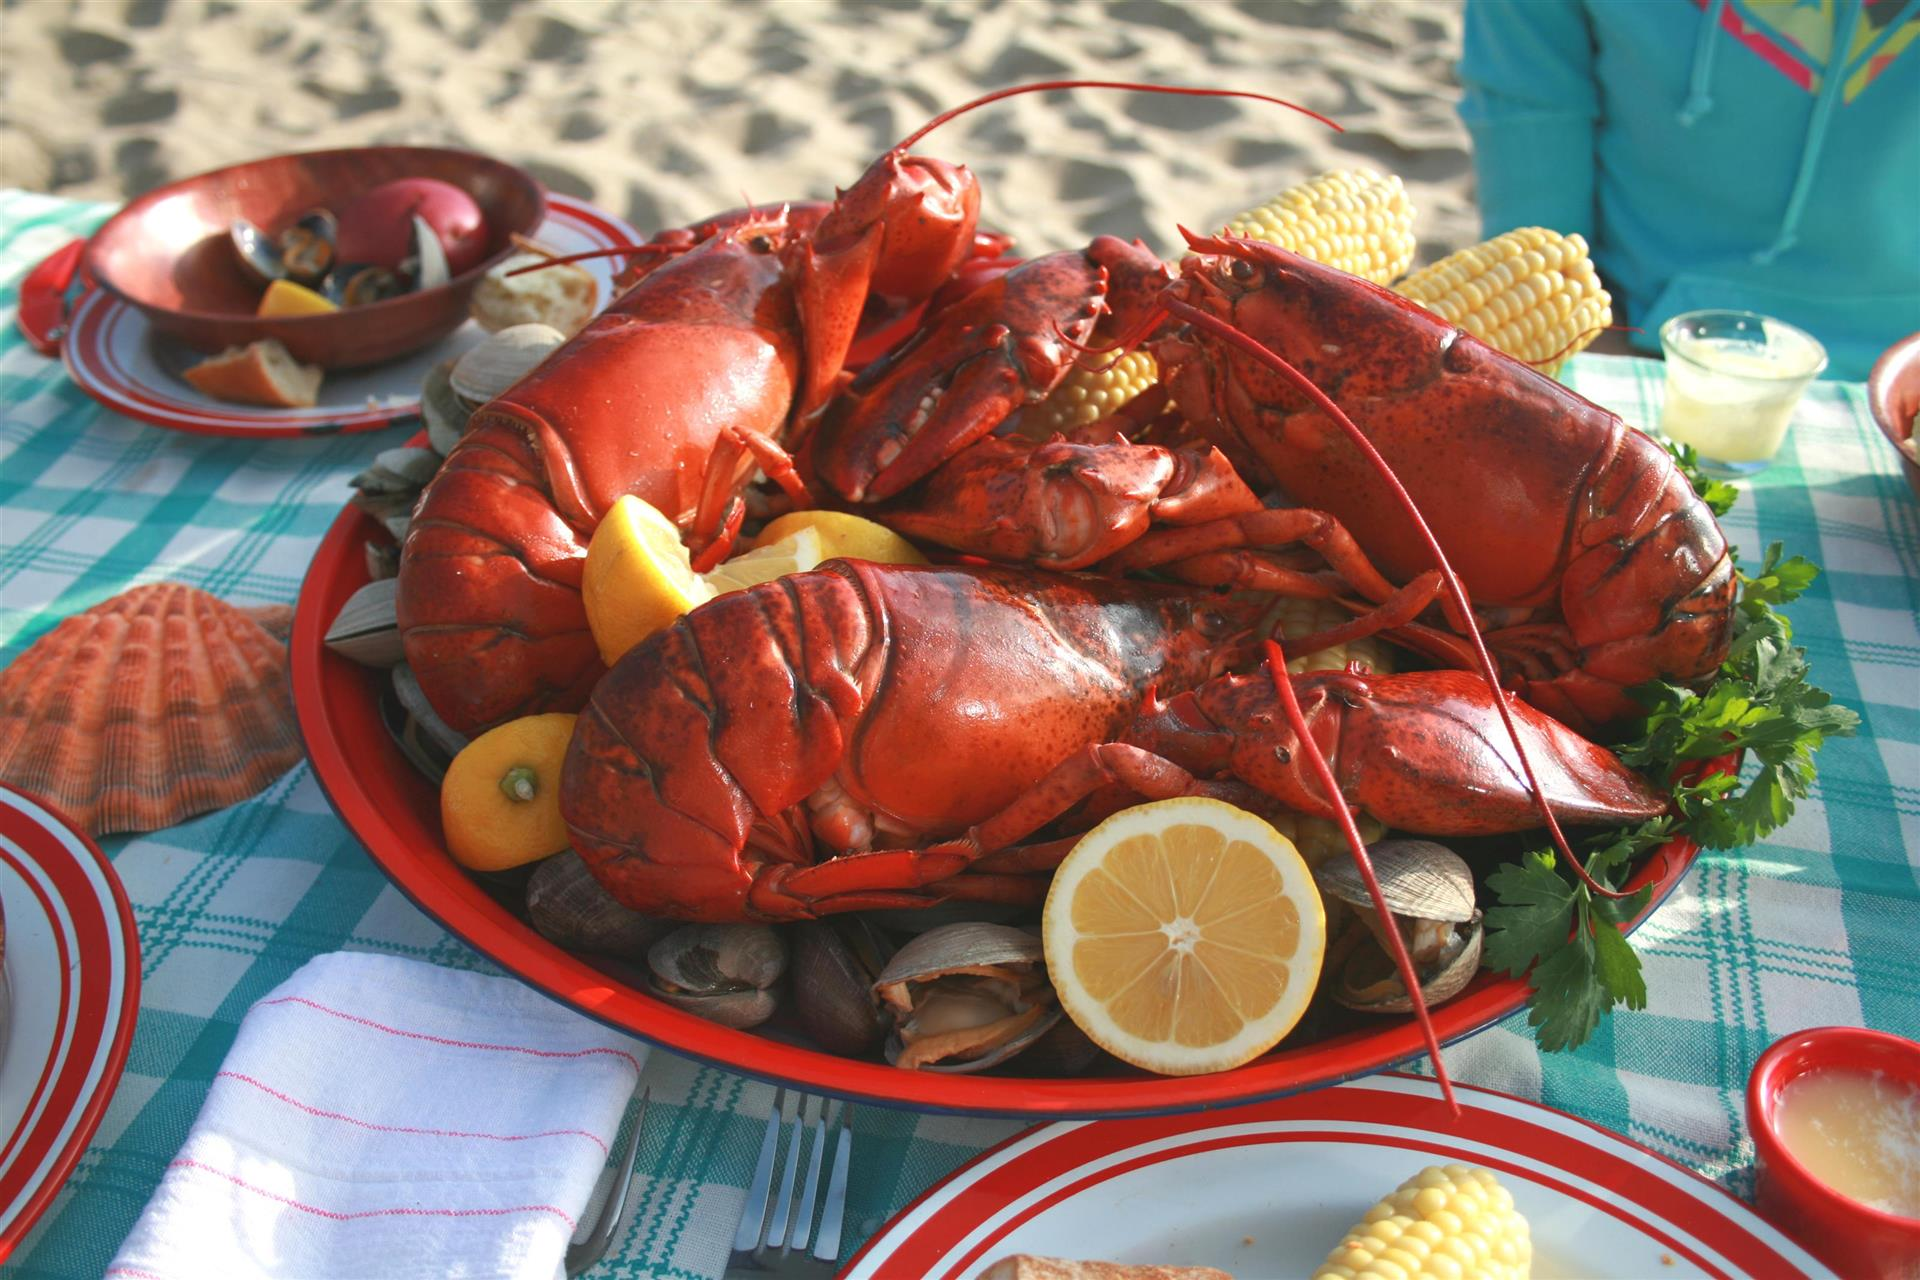 three lobsters on a plate with clams, mussels, corn on the cob and orange wedges